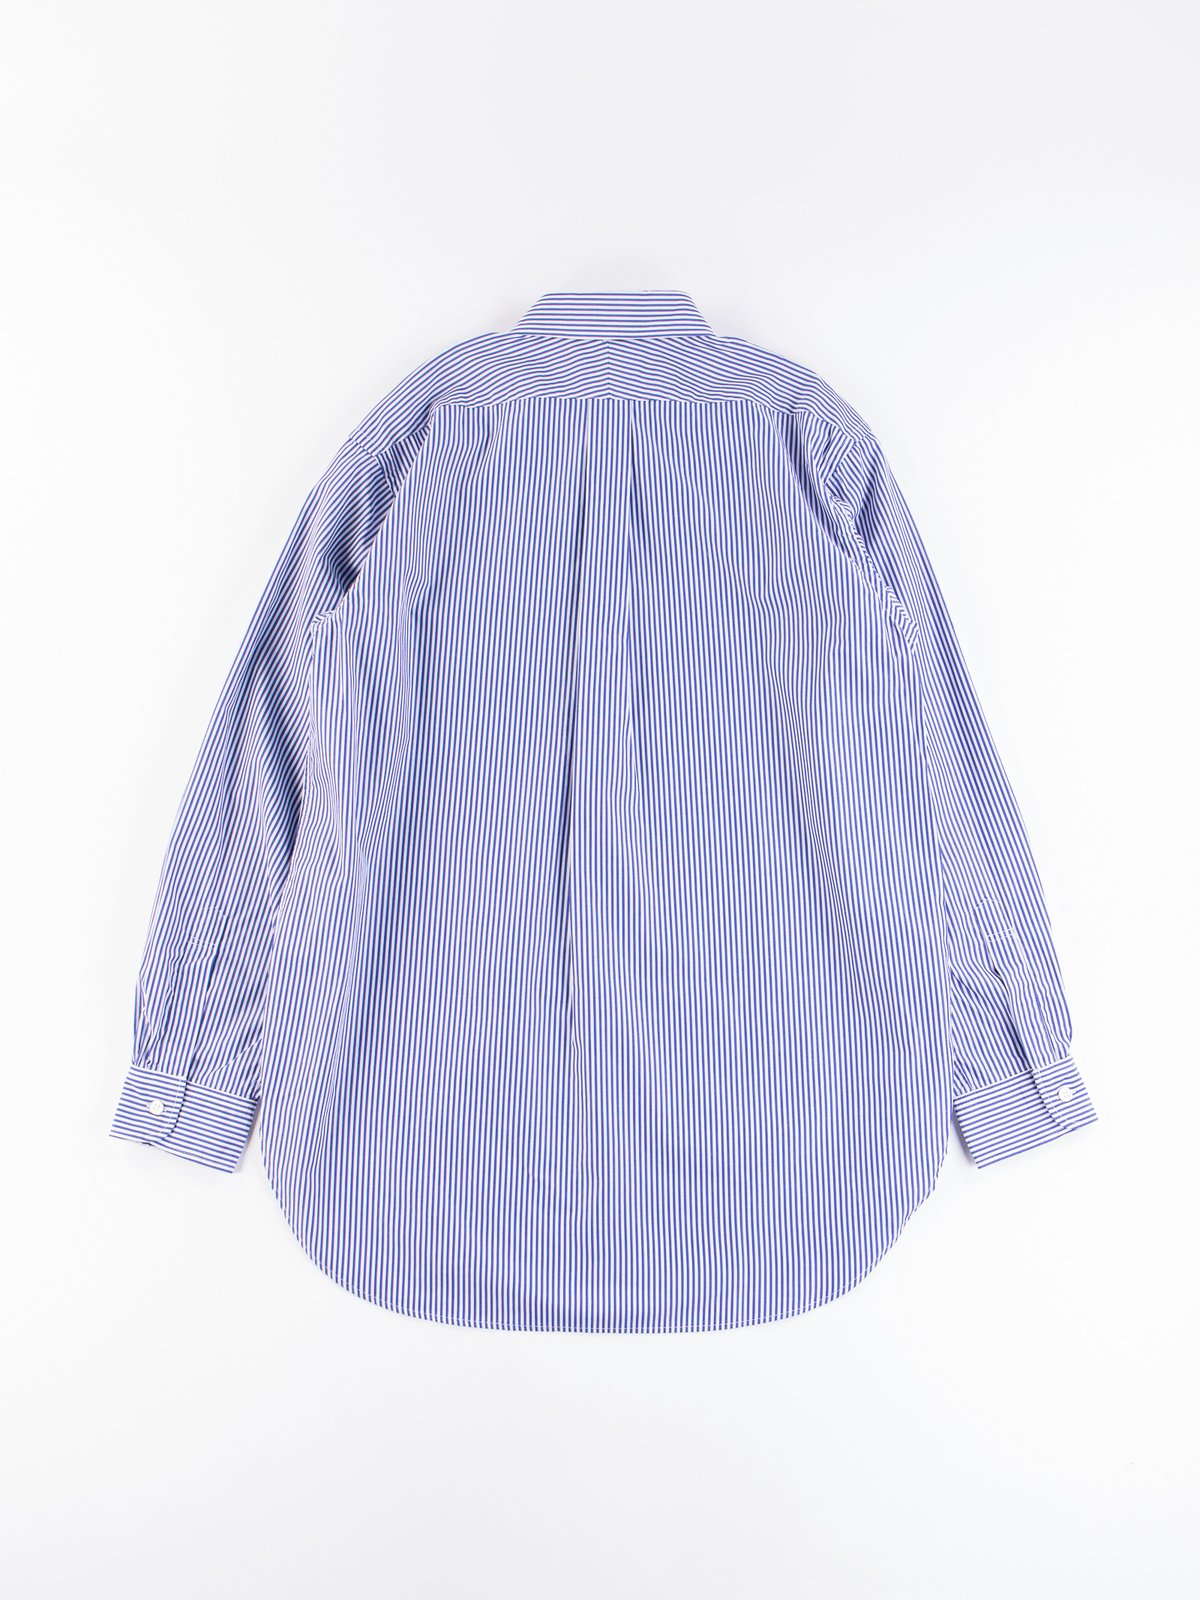 Blue/White Candy Stripe Broadcloth 19th Century BD Shirt - Image 6